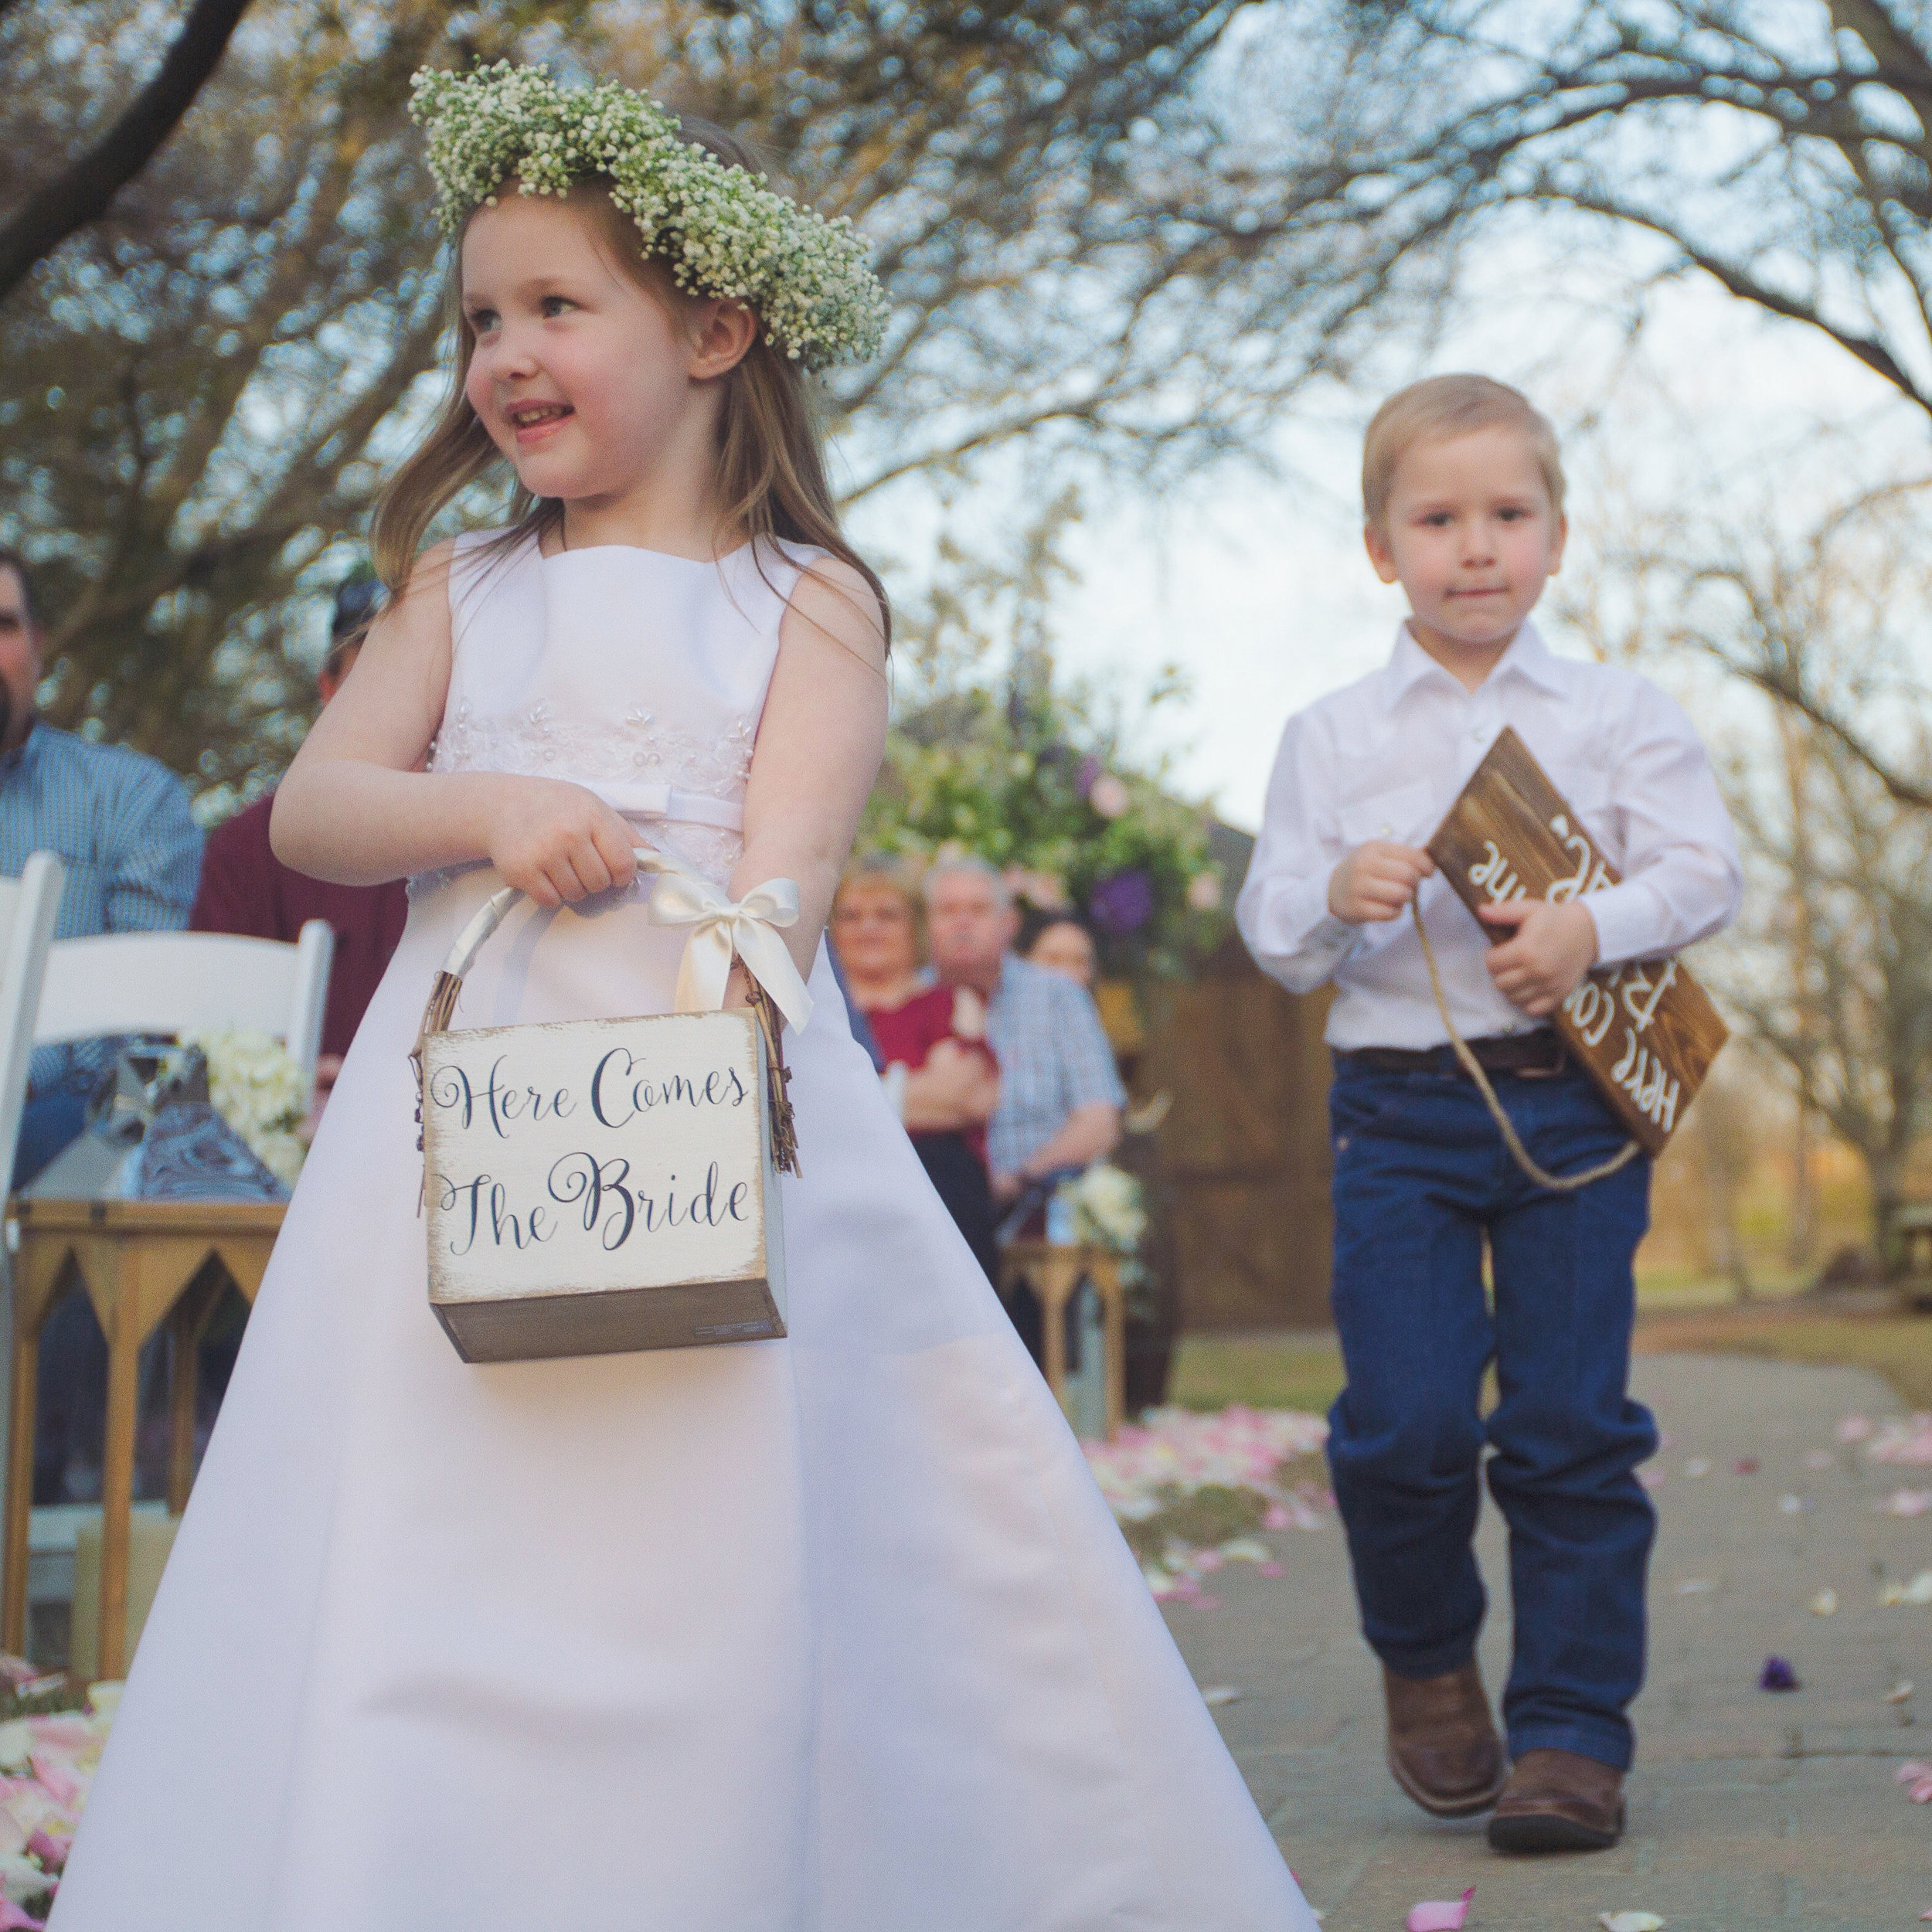 Image Captured as Associate Photographer for Hayd & Izzy Design